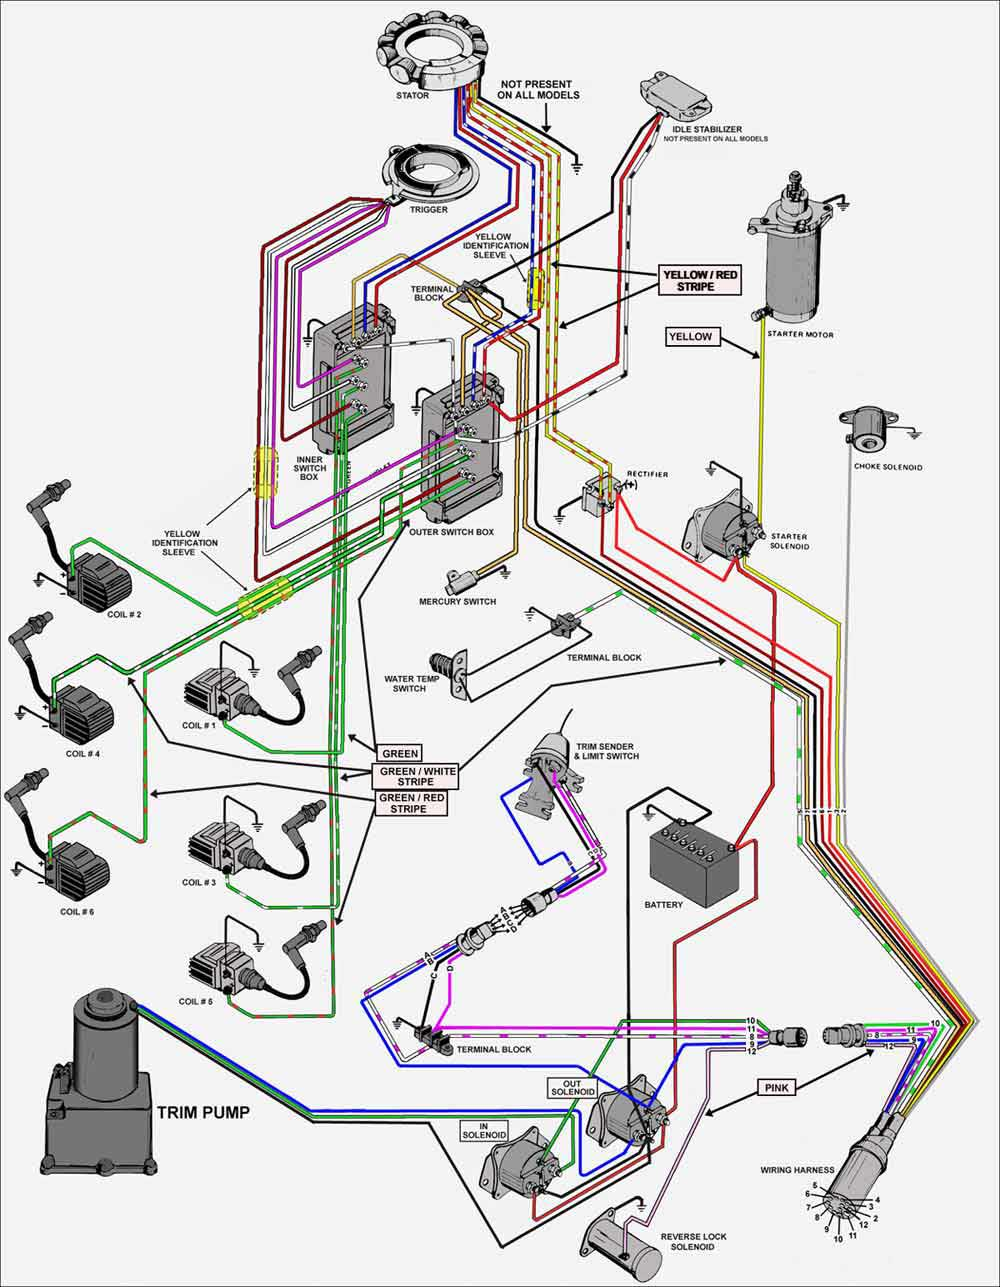 mercury outboard wiring diagrams -- mastertech marin mercury v6 outboard wiring diagram mercury 6 wire ignition switch diagram mastertech marine